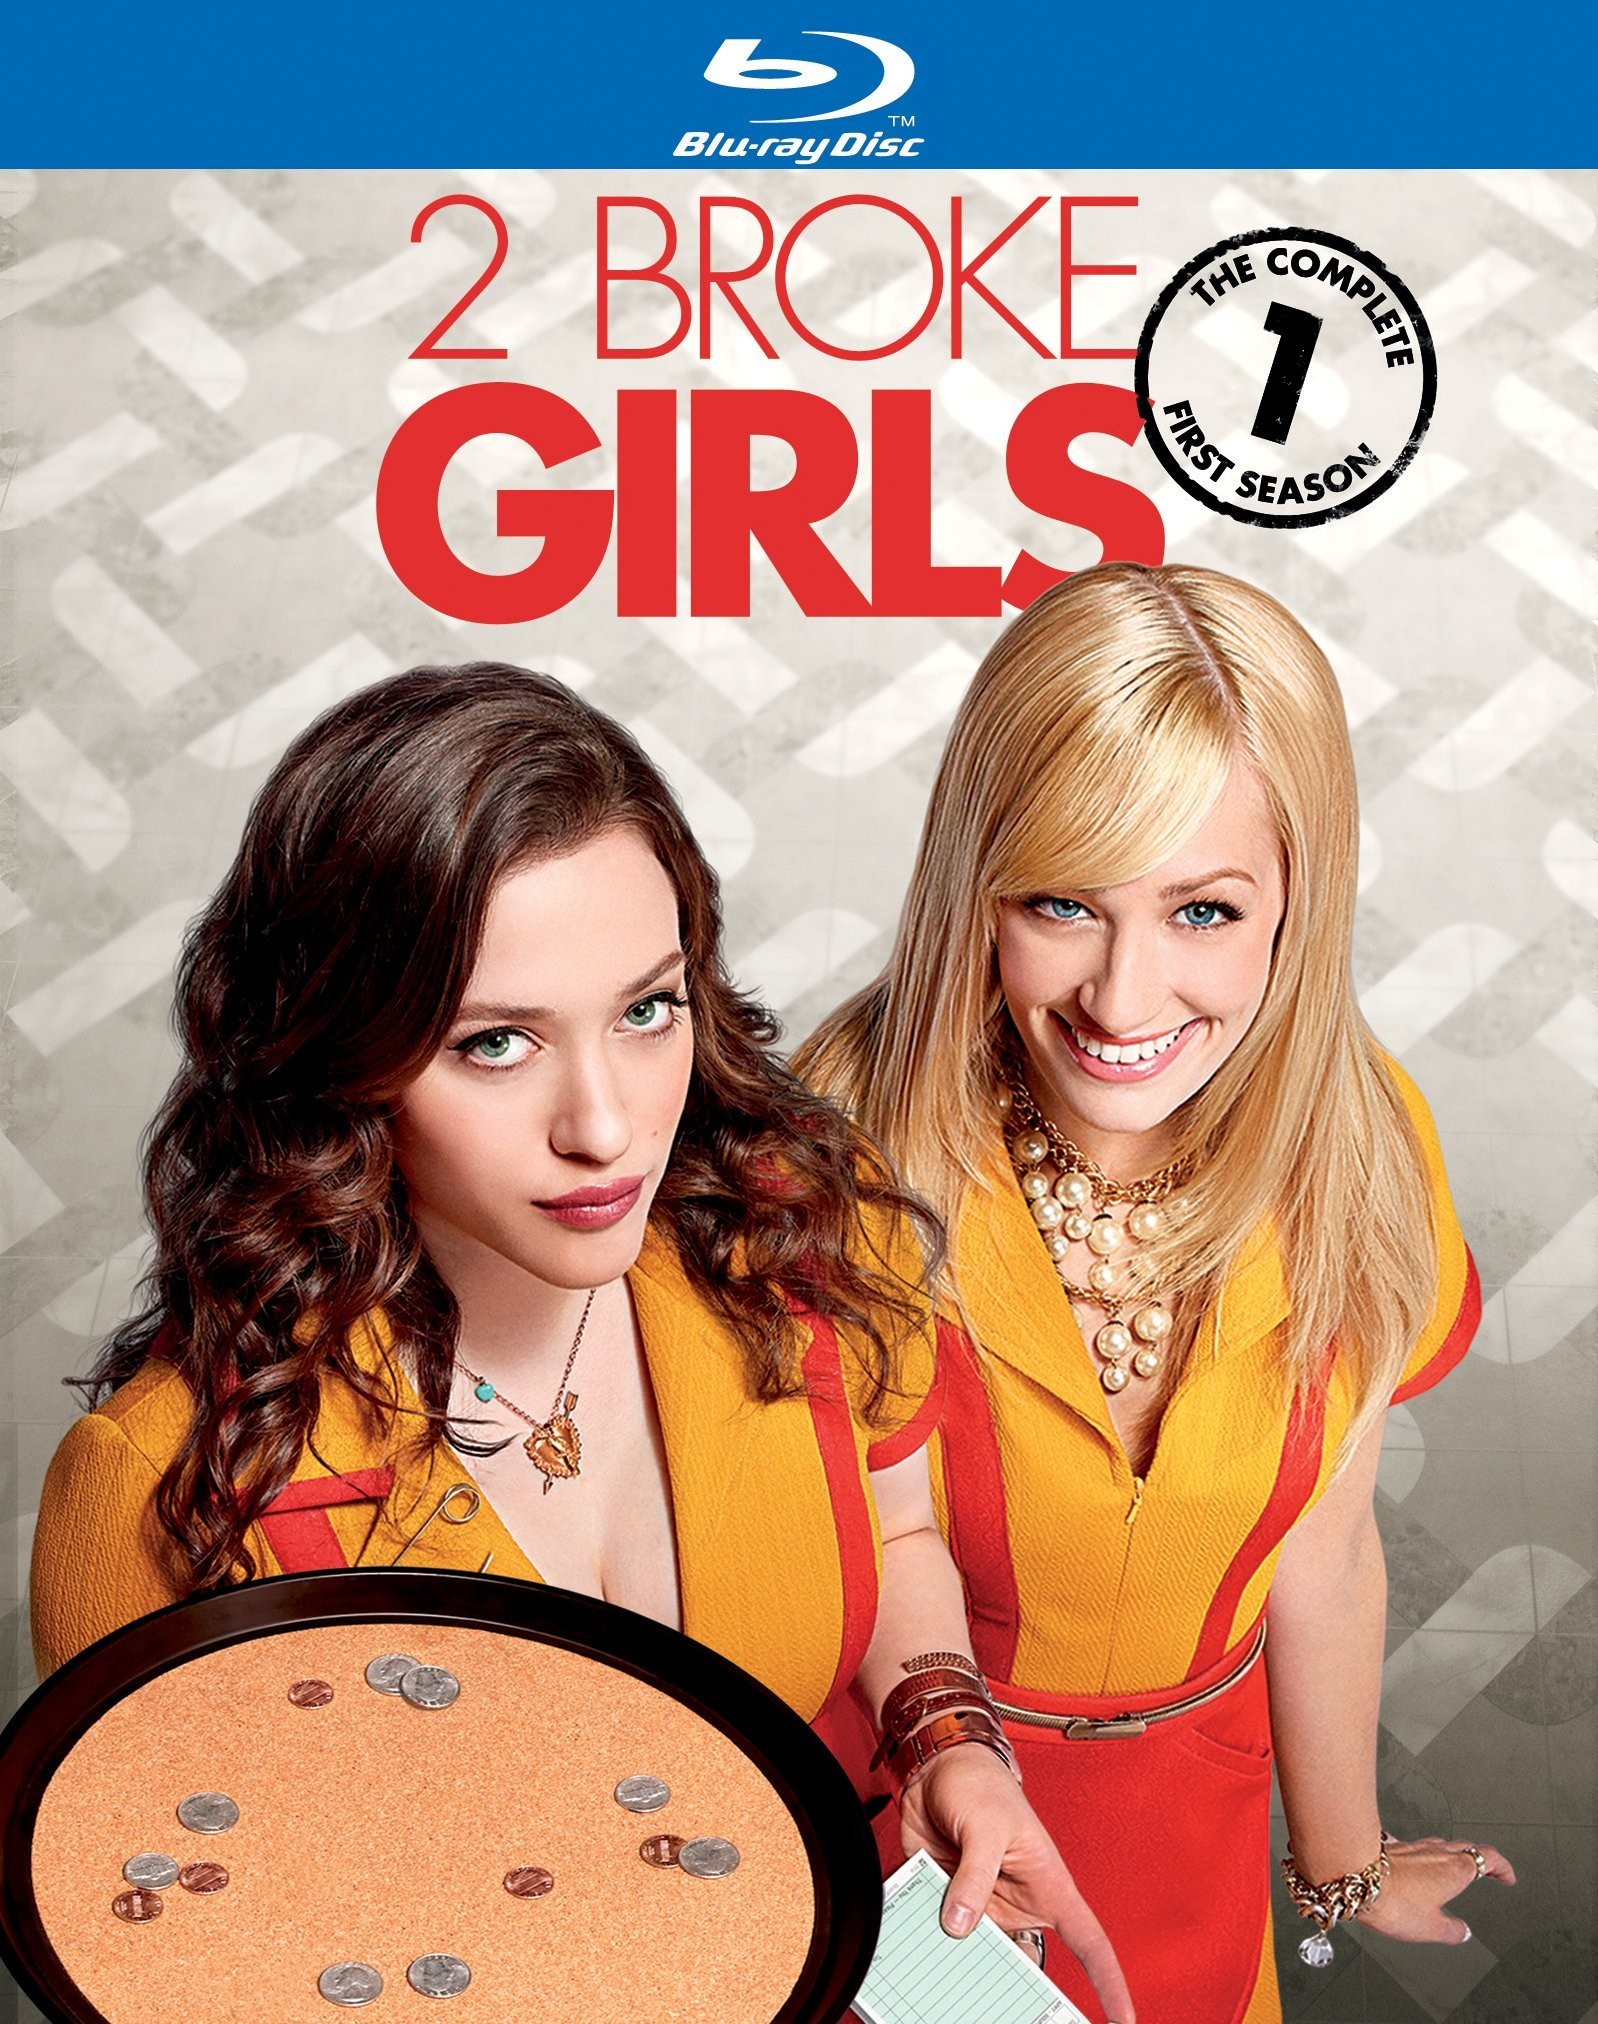 2 Broke Girls 1. Sezon ( 720p Bluray ) Türkçe - English Altyazılı {2011 - 2012}